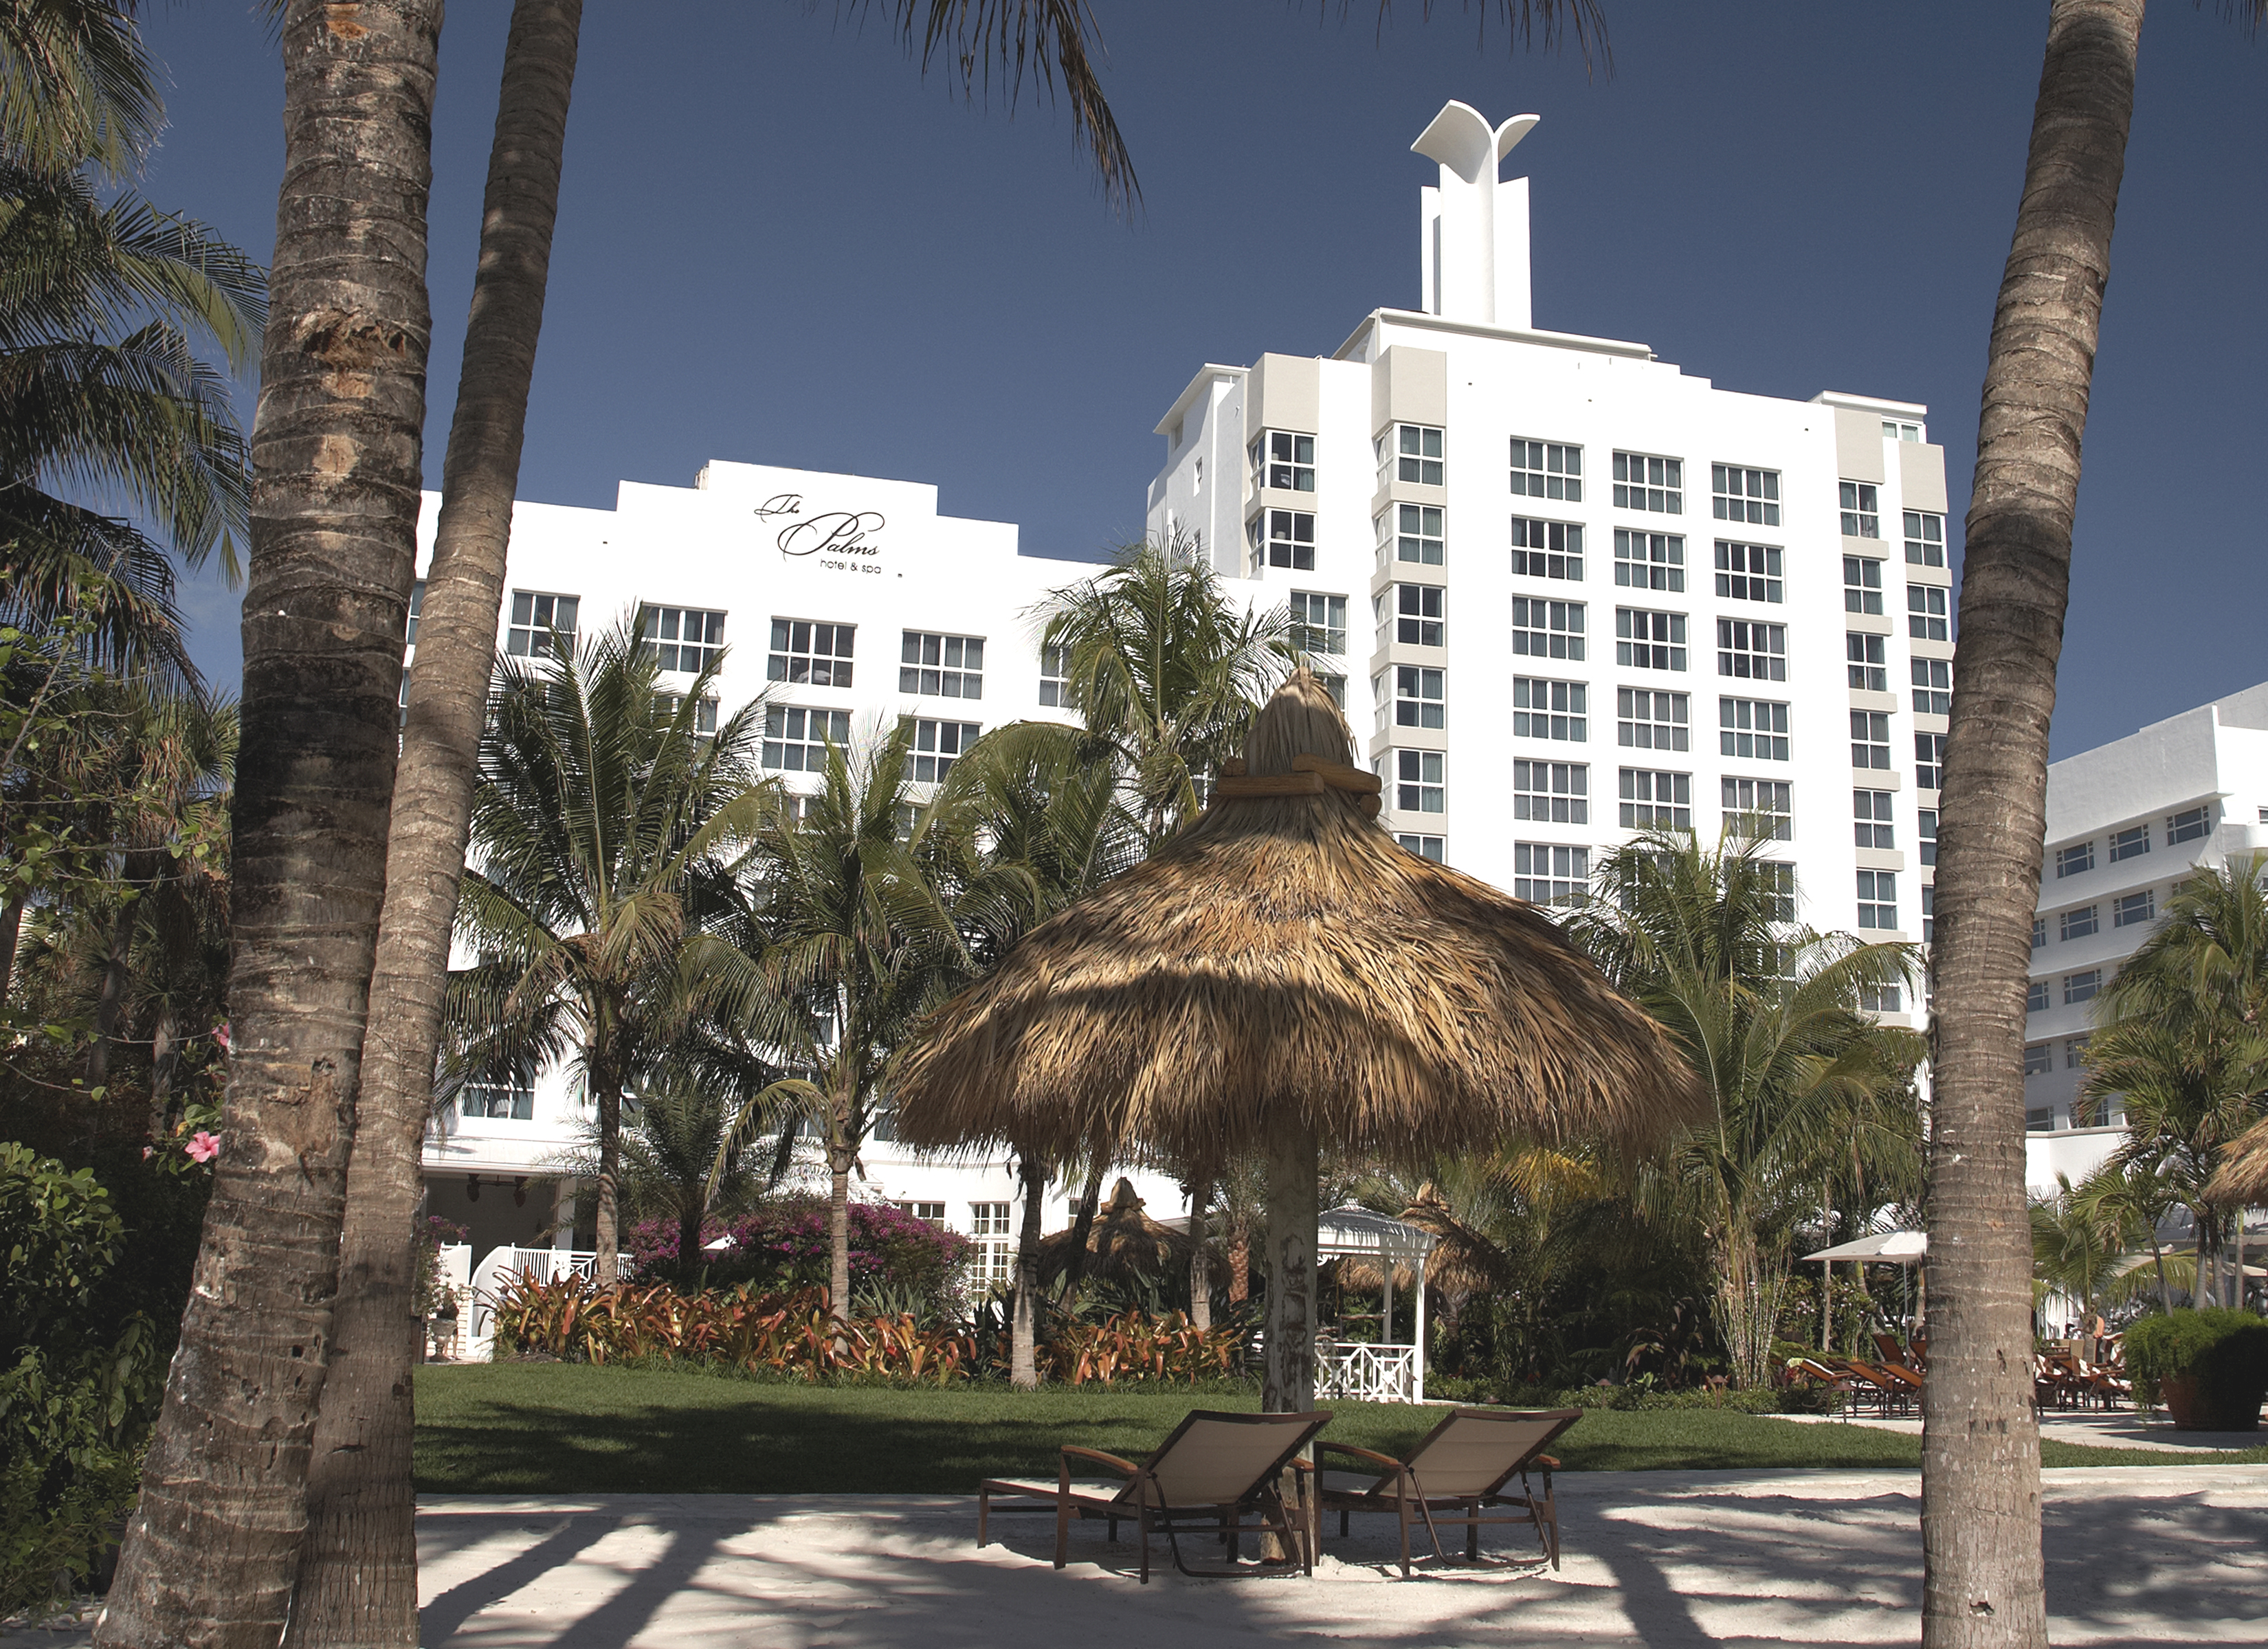 The Palms hotell